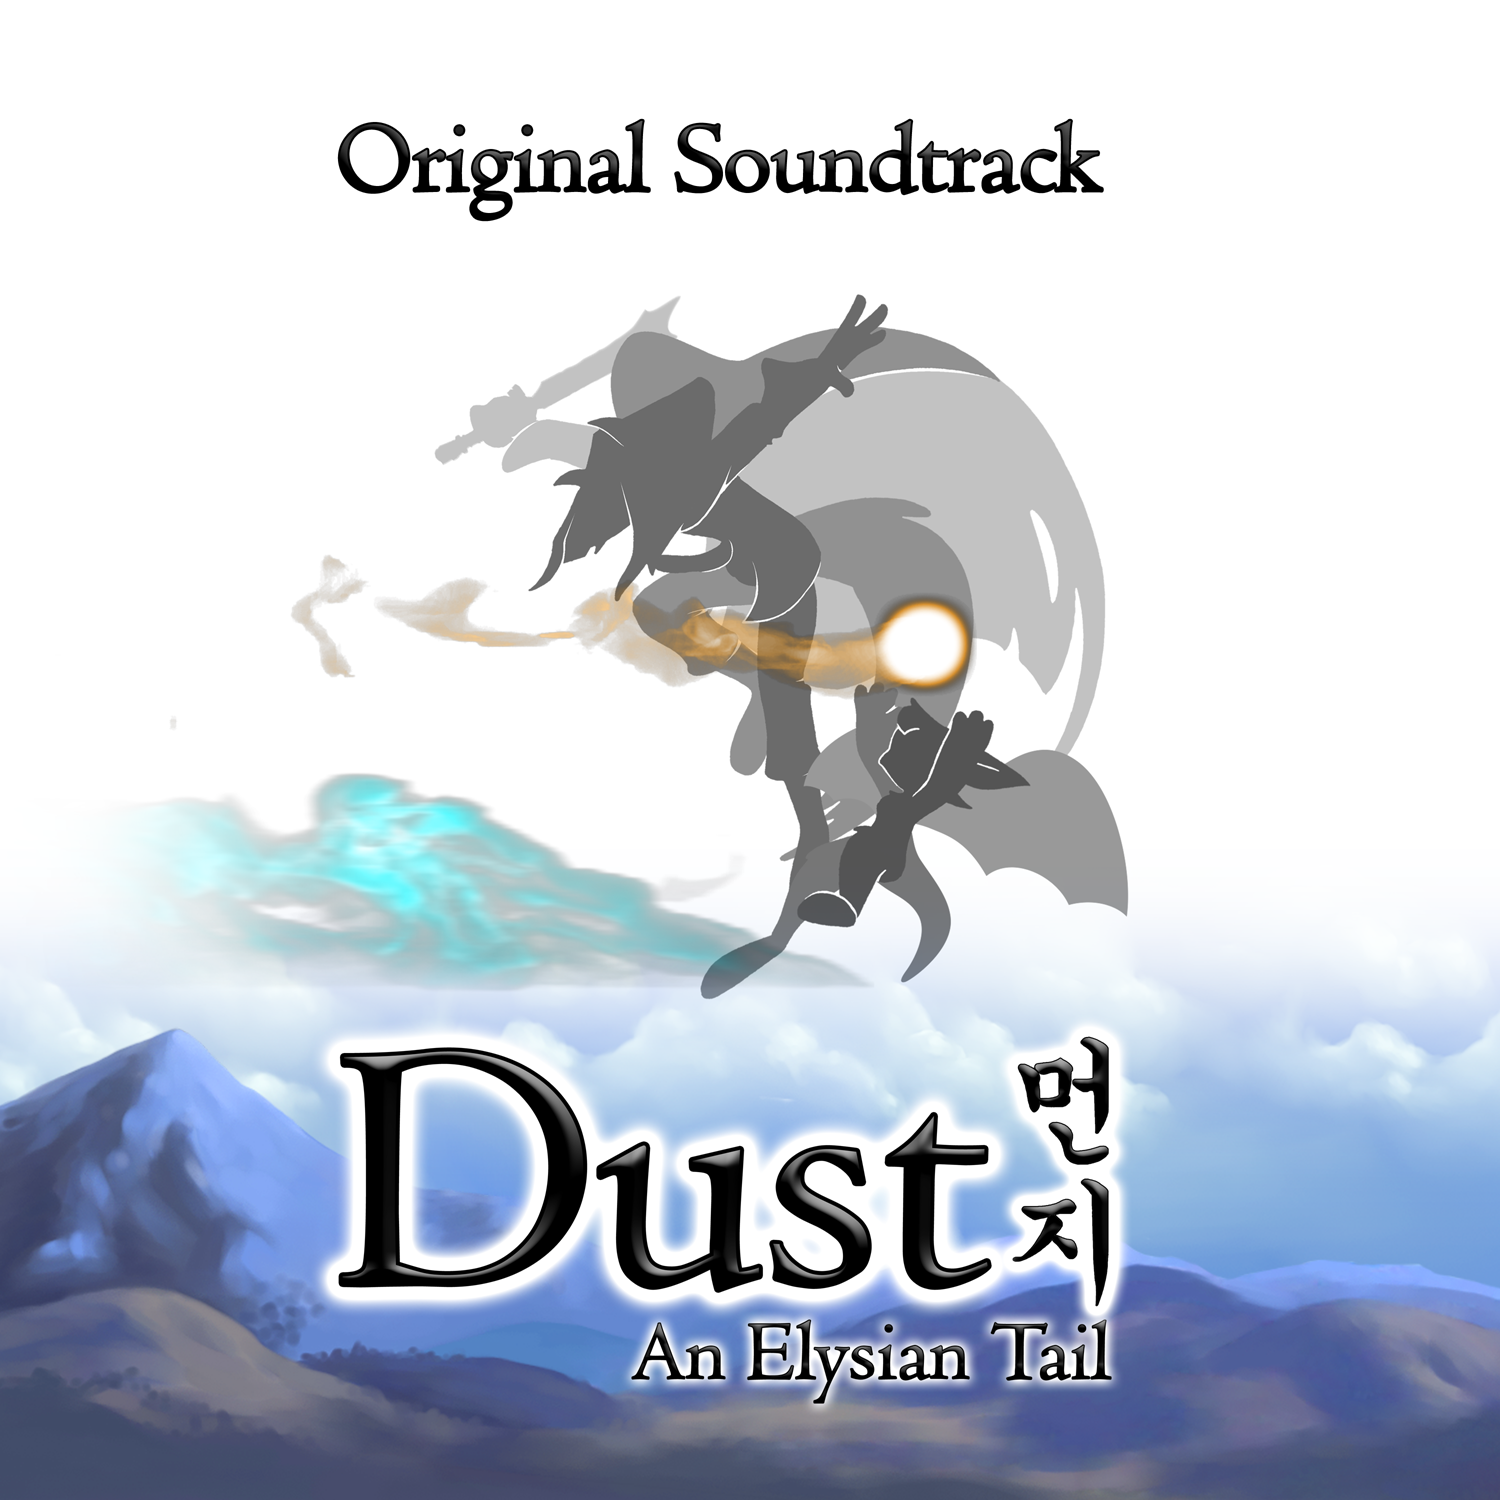 Dust: An Elysian Tail Soundtrack now available!